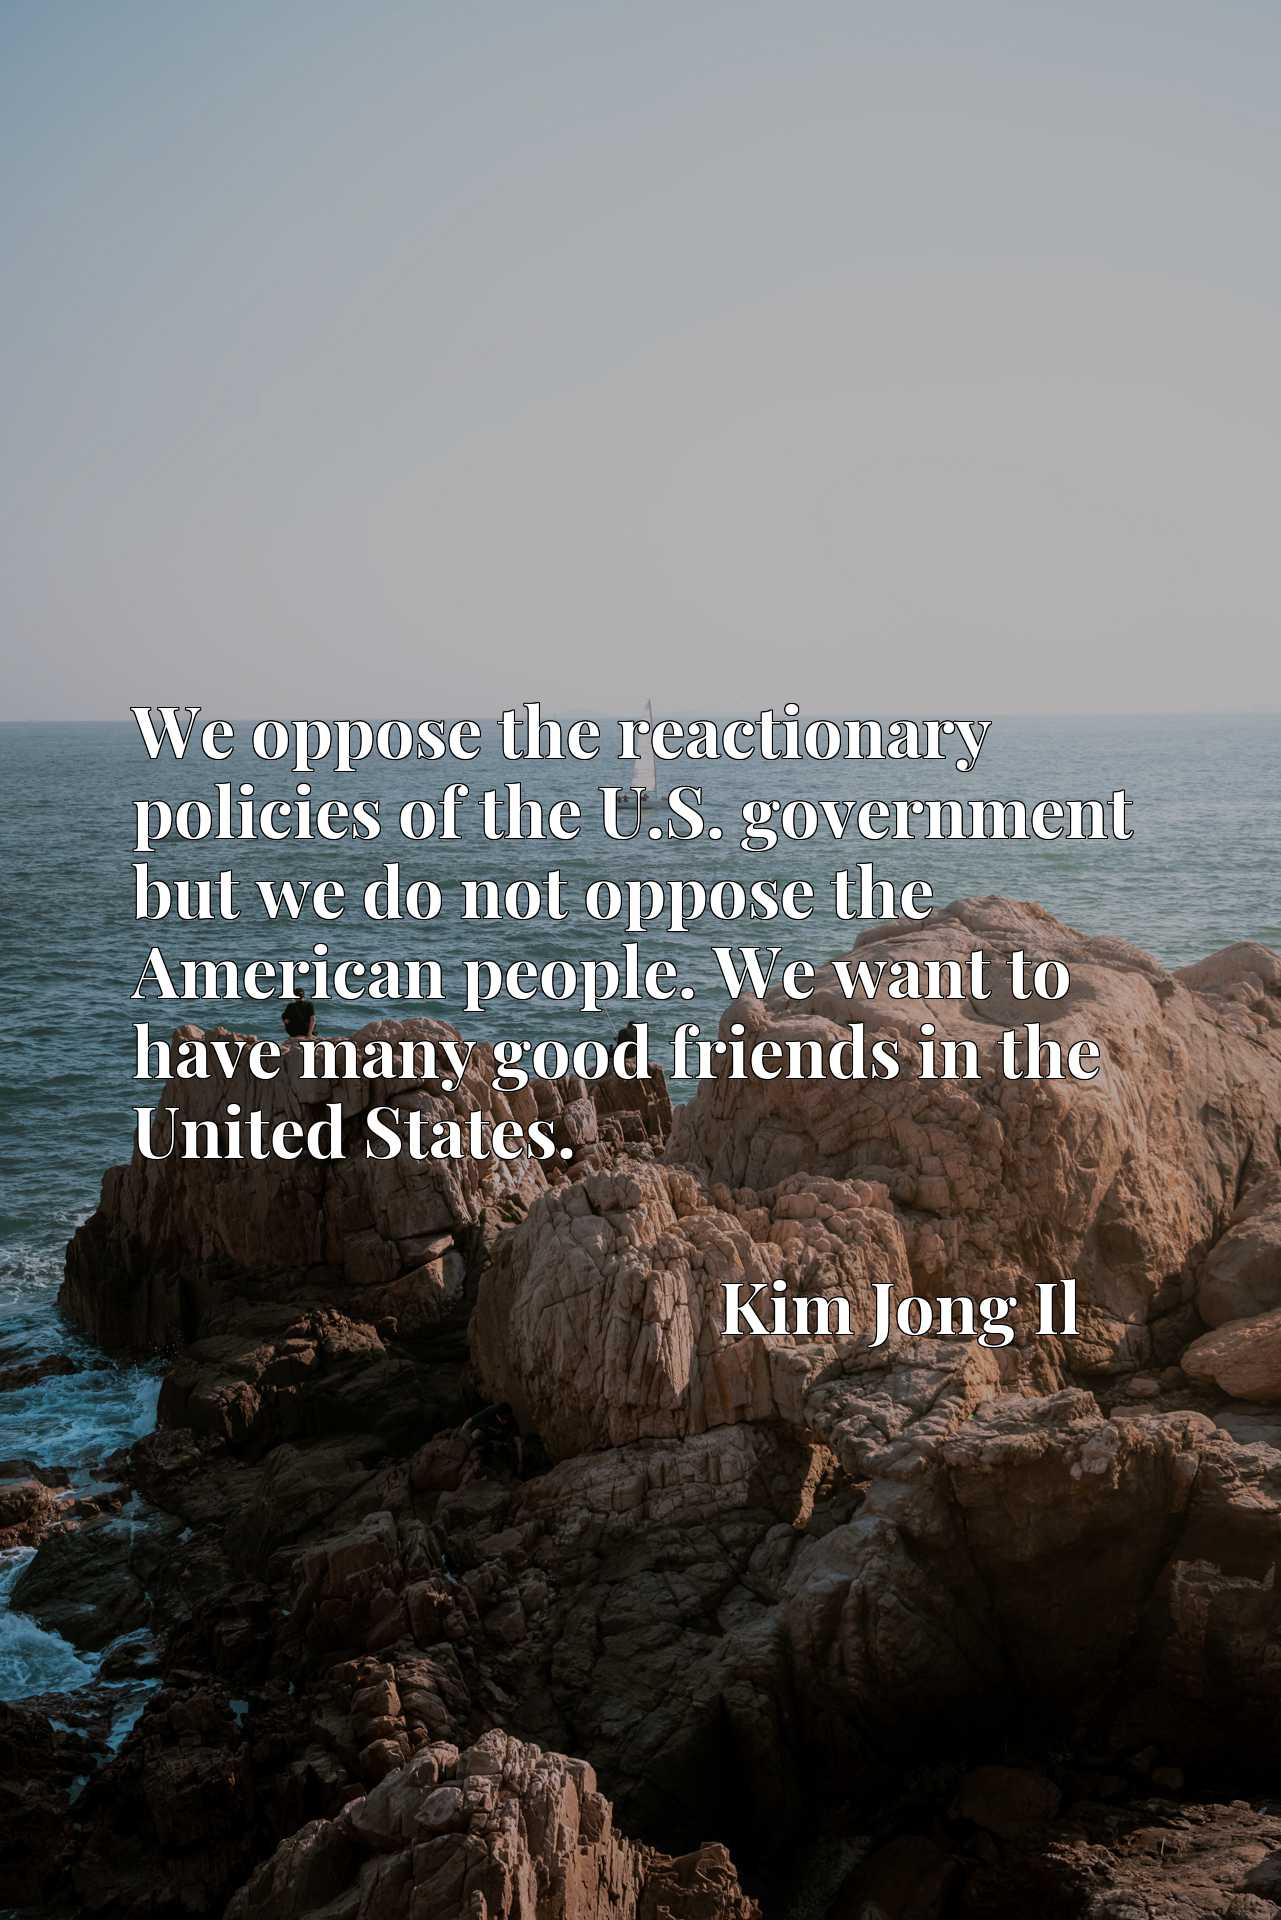 We oppose the reactionary policies of the U.S. government but we do not oppose the American people. We want to have many good friends in the United States.